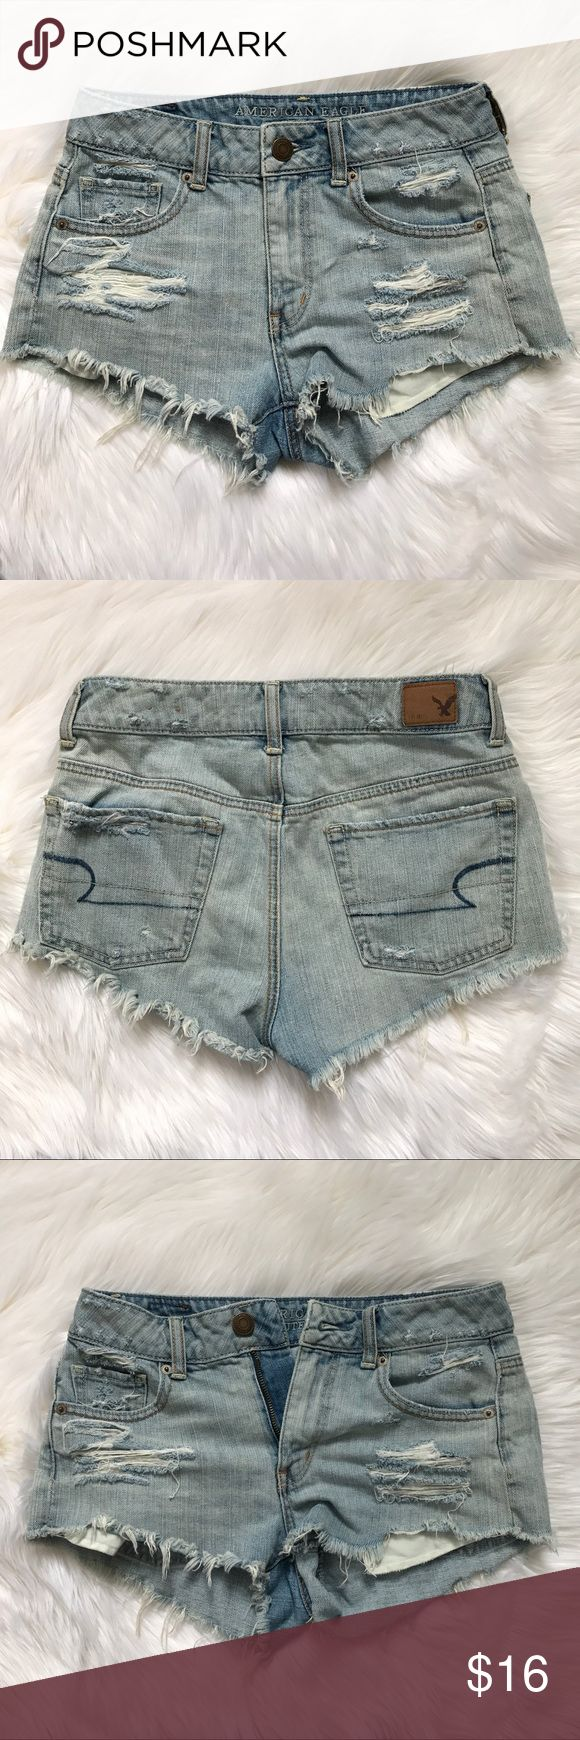 American Eagle Distressed Jean Shorts Distressed American Eagle Jean Shorts. Zip  up & button closure. Three front functioning pockets l. Two back functioning pockets. Waist 14.5 Length about 12 inches. Great Condition. American Eagle Outfitters Shorts Jean Shorts